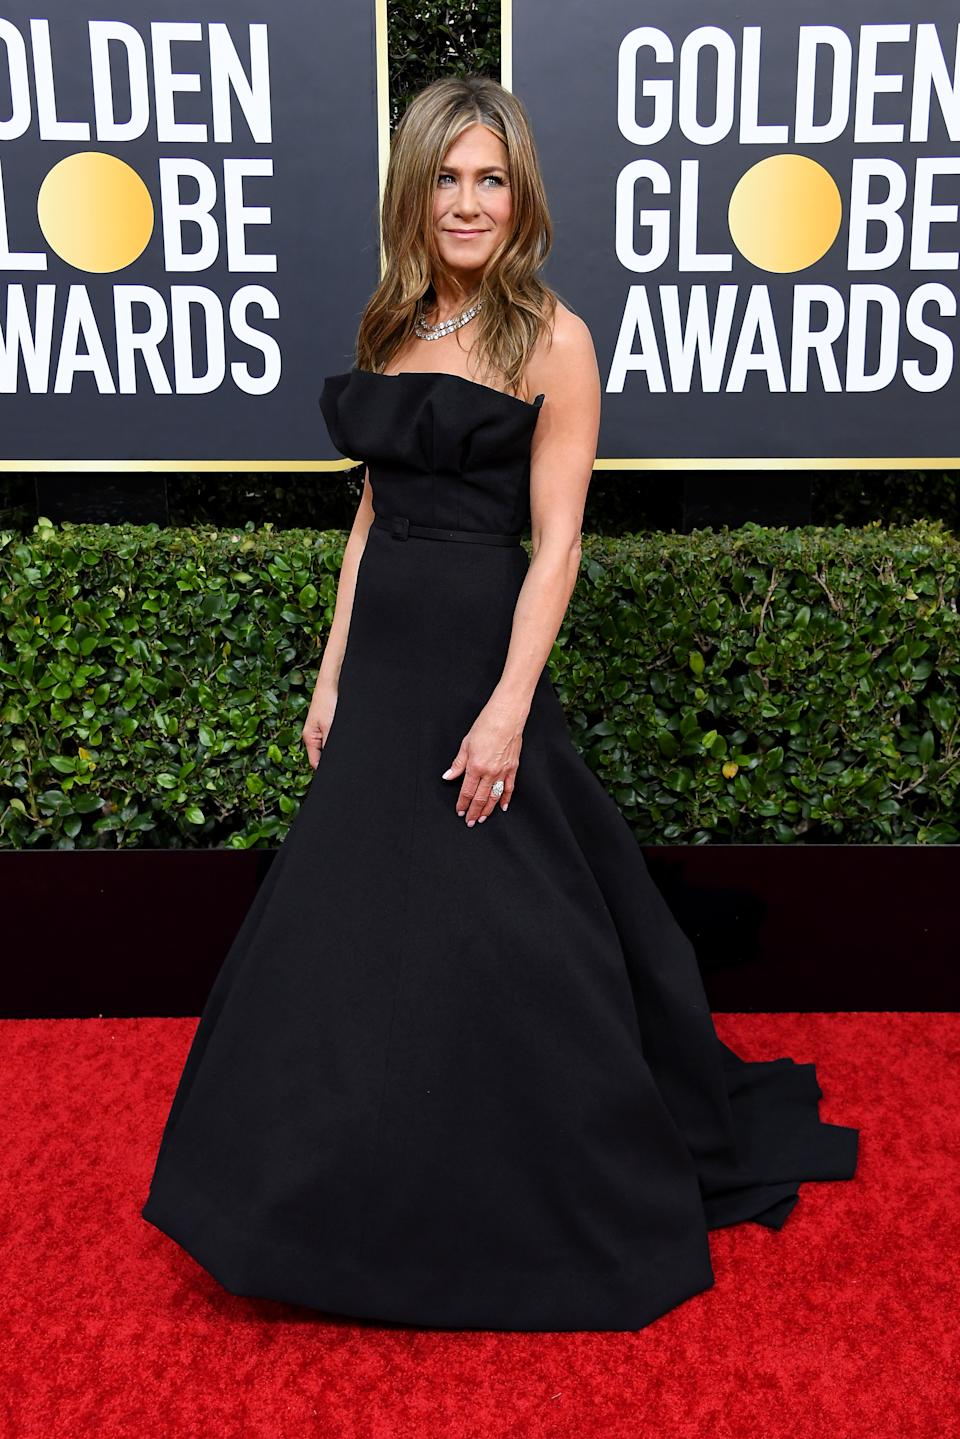 """Nominated for her role on """"The Morning Show,"""" Aniston went full glam in a belted black ballgown. (Photo by Steve Granitz/WireImage)"""